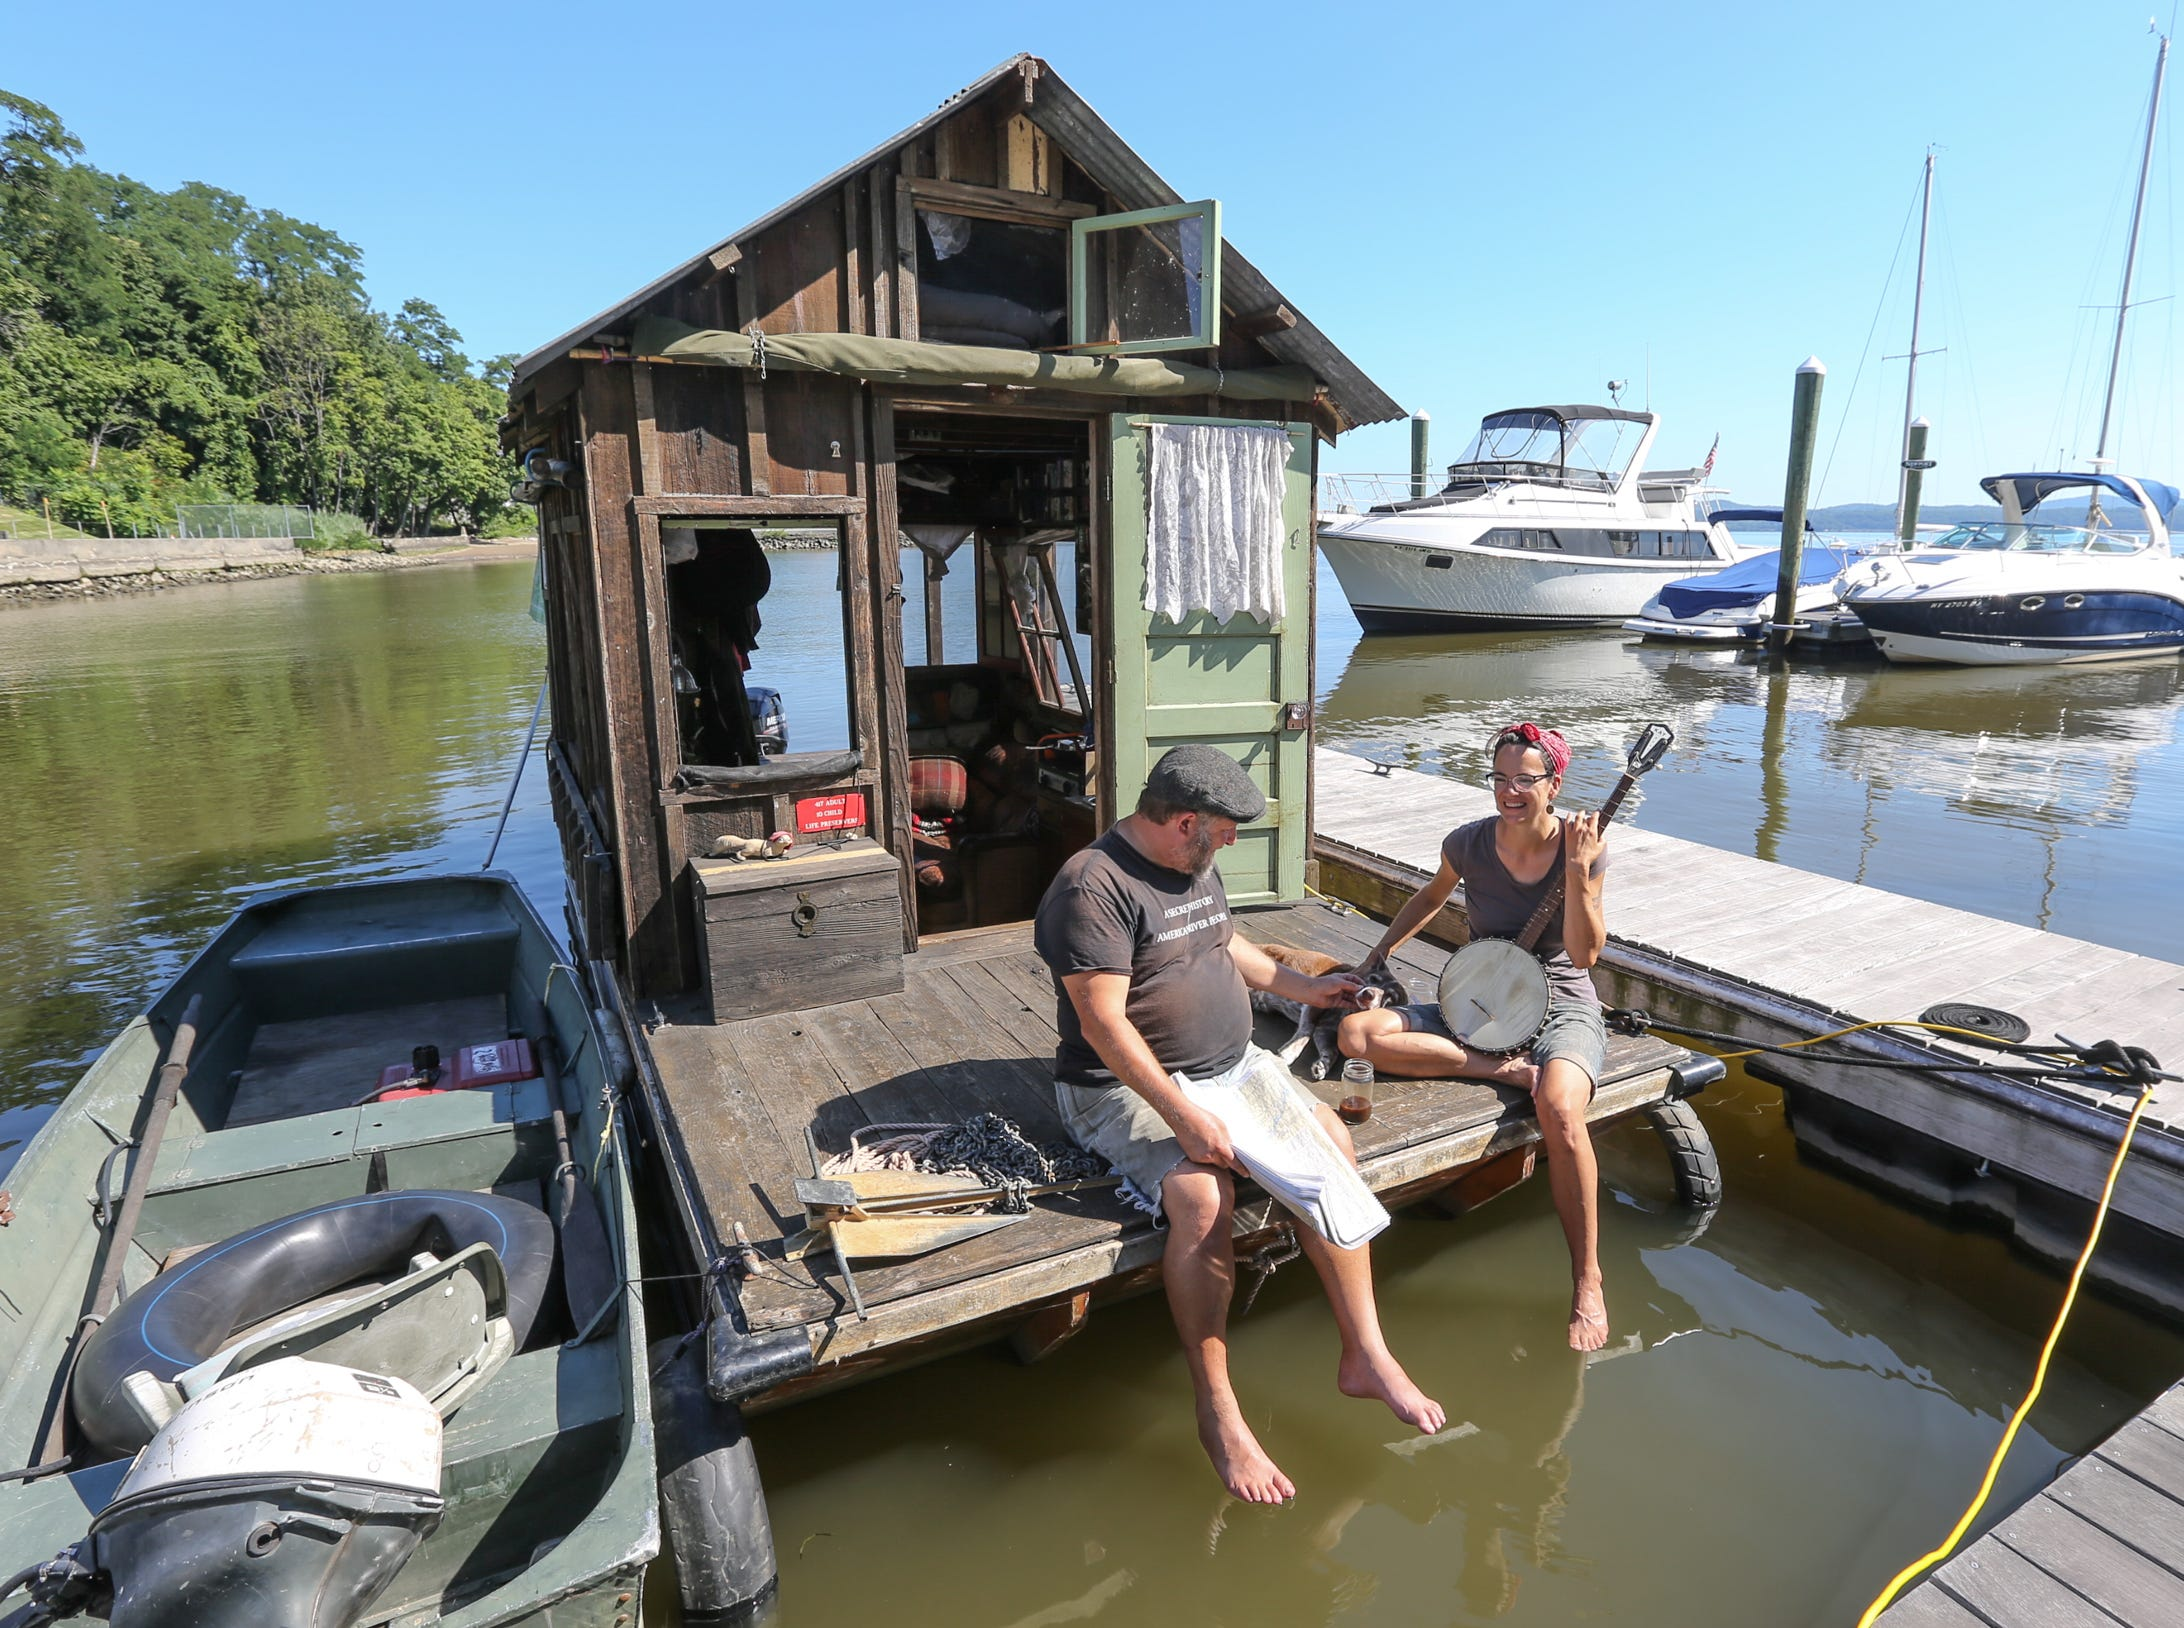 """Wes Modes, of Santa Cruz, Calif., center, and ship mate Lauren Benz, with their dog  Hazel sit on the bow the Shantyboat """"Dotty"""" at the Admiral's Cove Marina in Haverstraw on Friday, July 20, 2018.  Modes and Landis stopped in Haverstraw on their way from Albany to Brooklyn."""